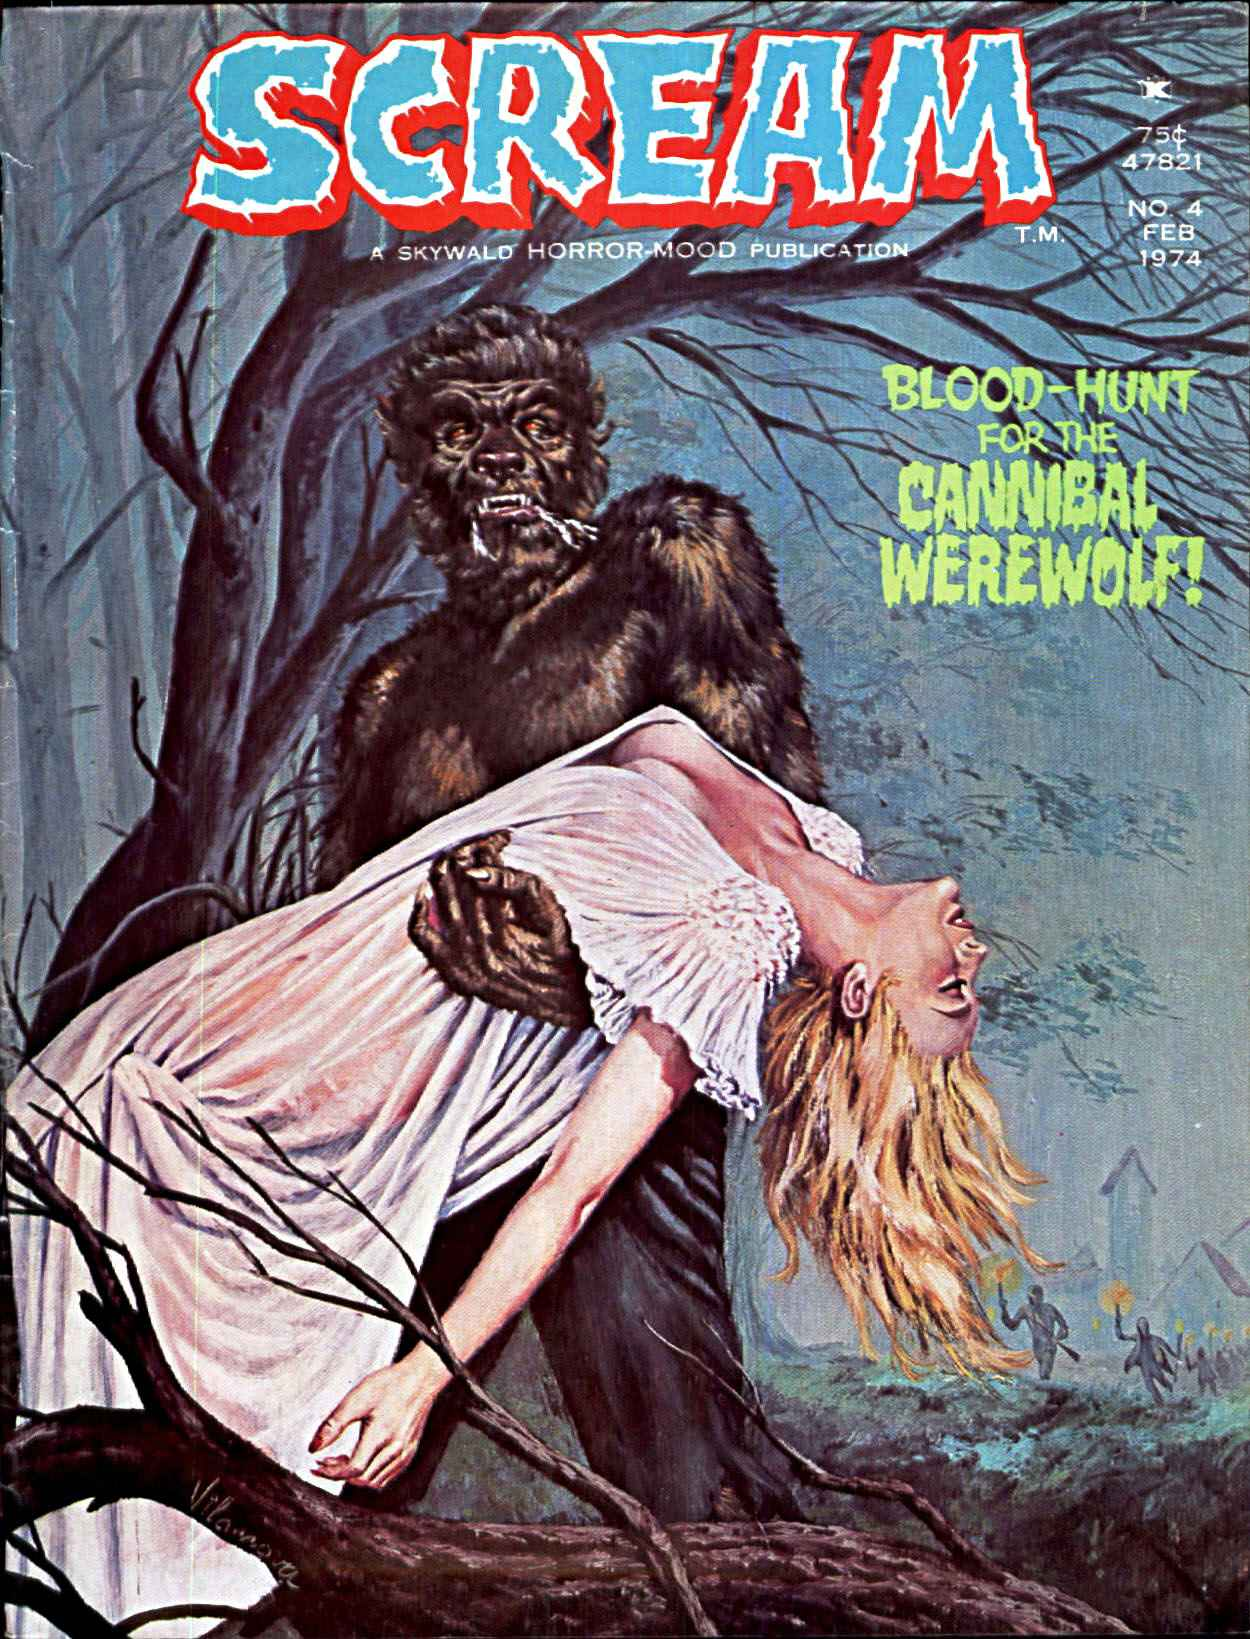 Scream Magazine, Issue 04, February 1974